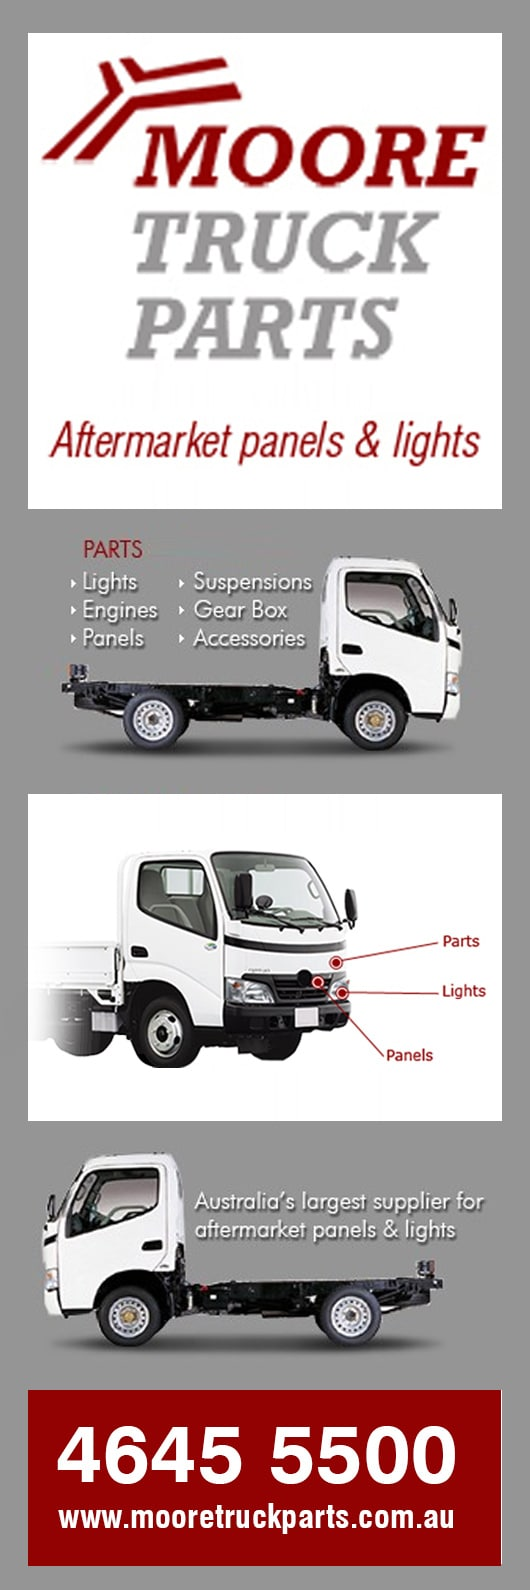 Moore Truck Parts - Truck Parts - WETHERILL PARK